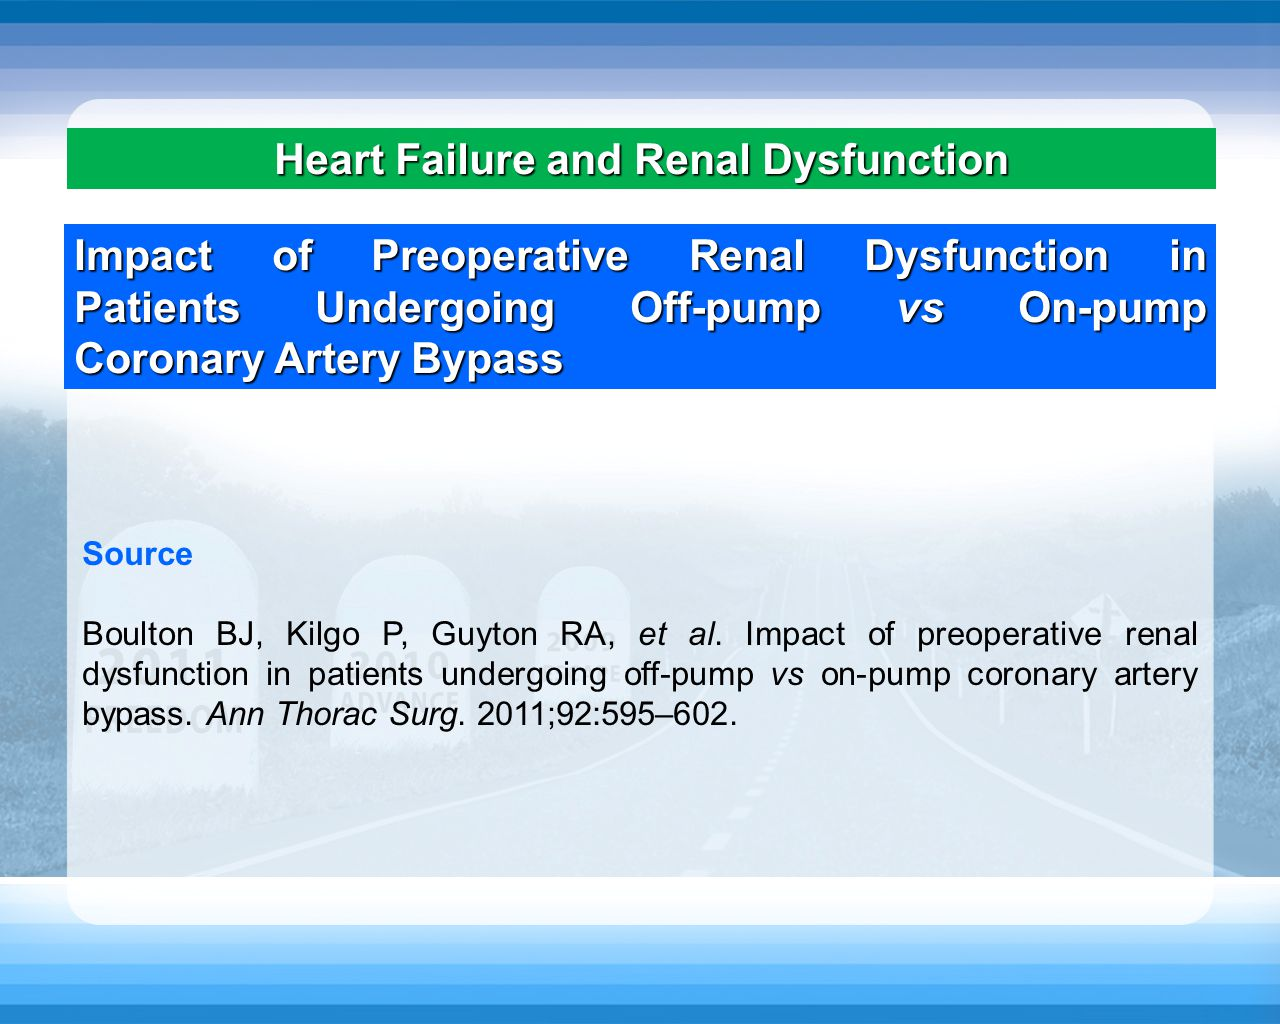 Heart Failure and Renal Dysfunction Impact of Preoperative Renal Dysfunction in Patients Undergoing Off-pump vs On-pump Coronary Artery Bypass Source Boulton BJ, Kilgo P, Guyton RA, et al.